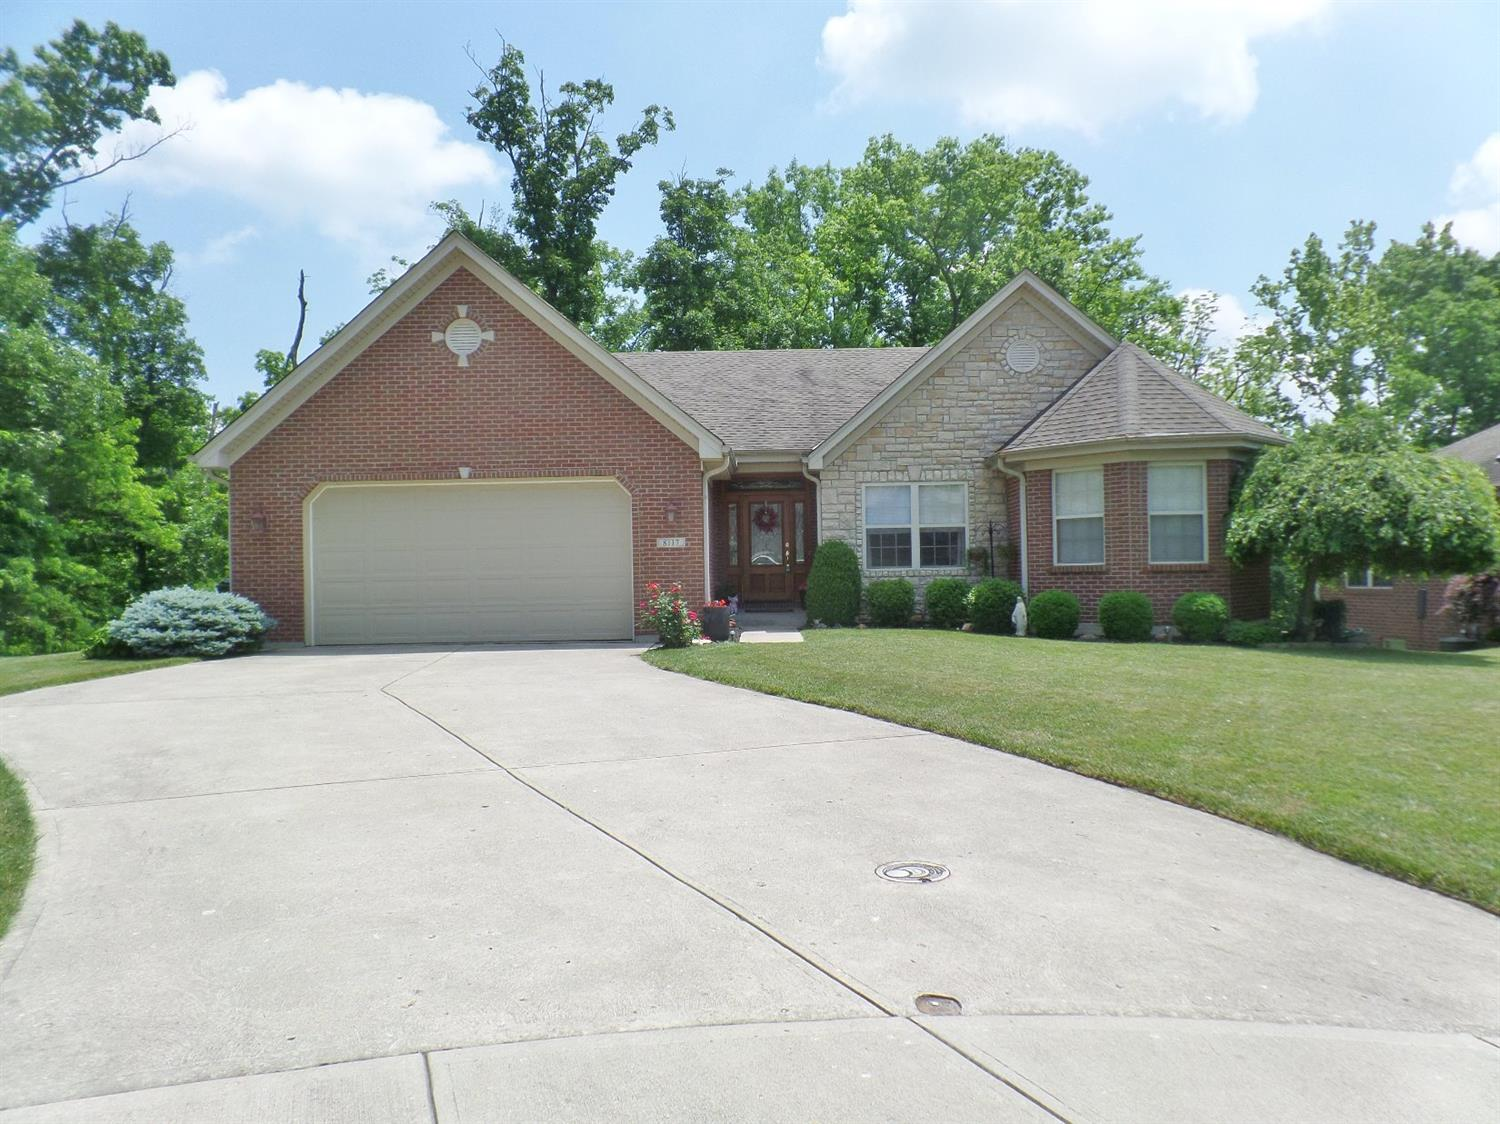 8117 Austin Ridge Dr Colerain Twp.West, OH